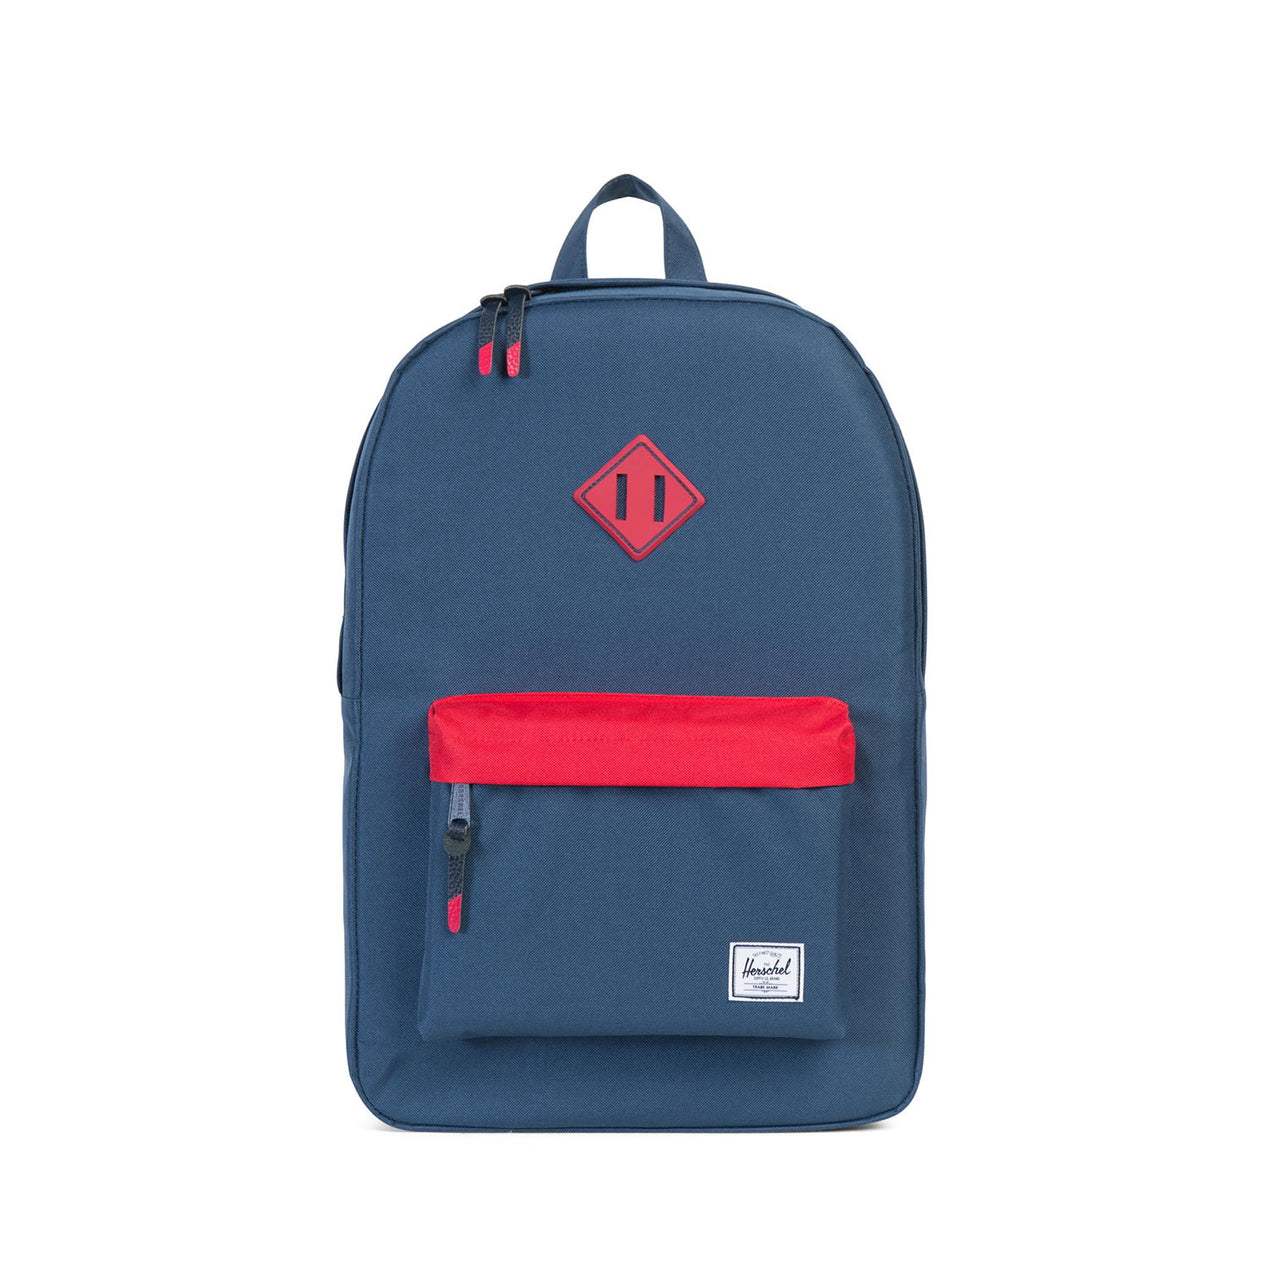 2e65f5196 Herschel Supply Co. Heritage Backpack Navy - Red - Navy Rubber - Red ...